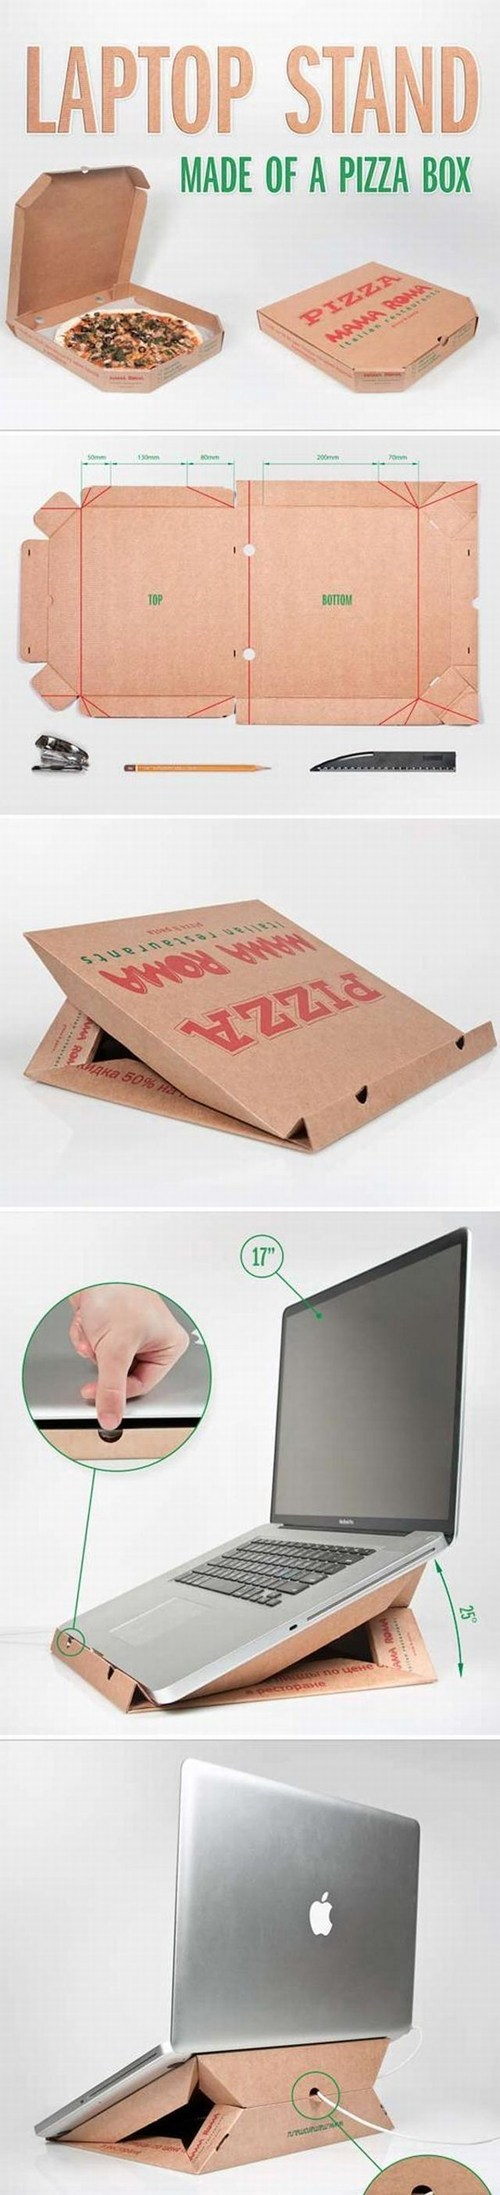 laptops pizza boxes DIY - 7150998272